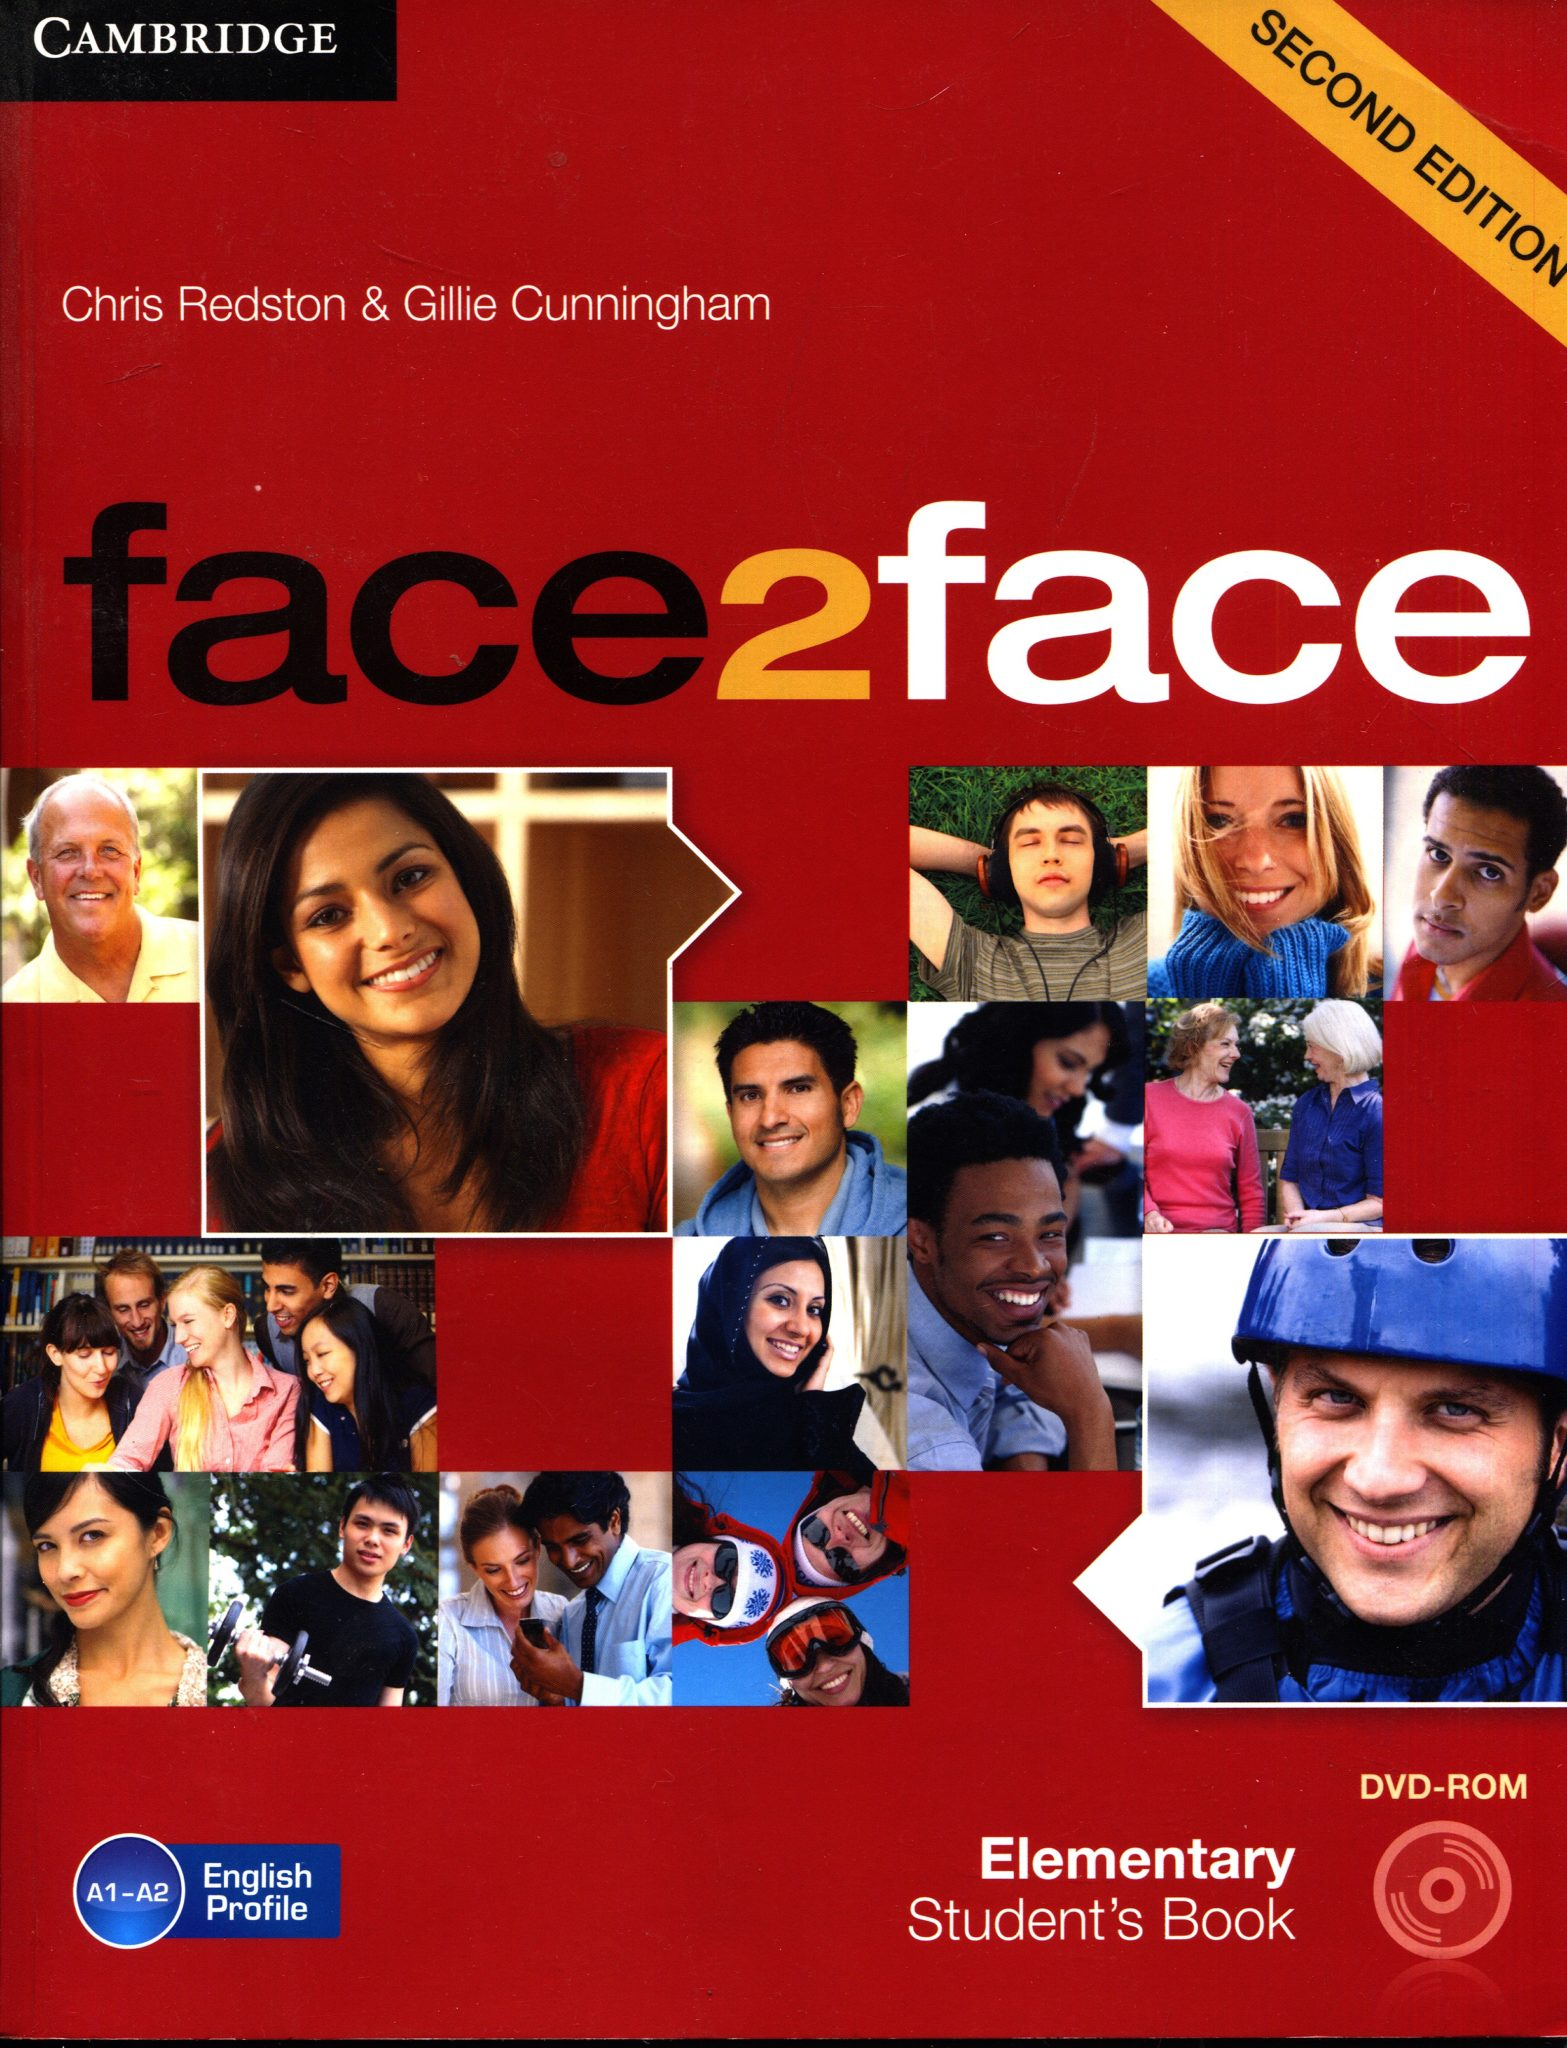 Chris Redston, Gillie Cunningham - Face2face second edition - elementary Student's book